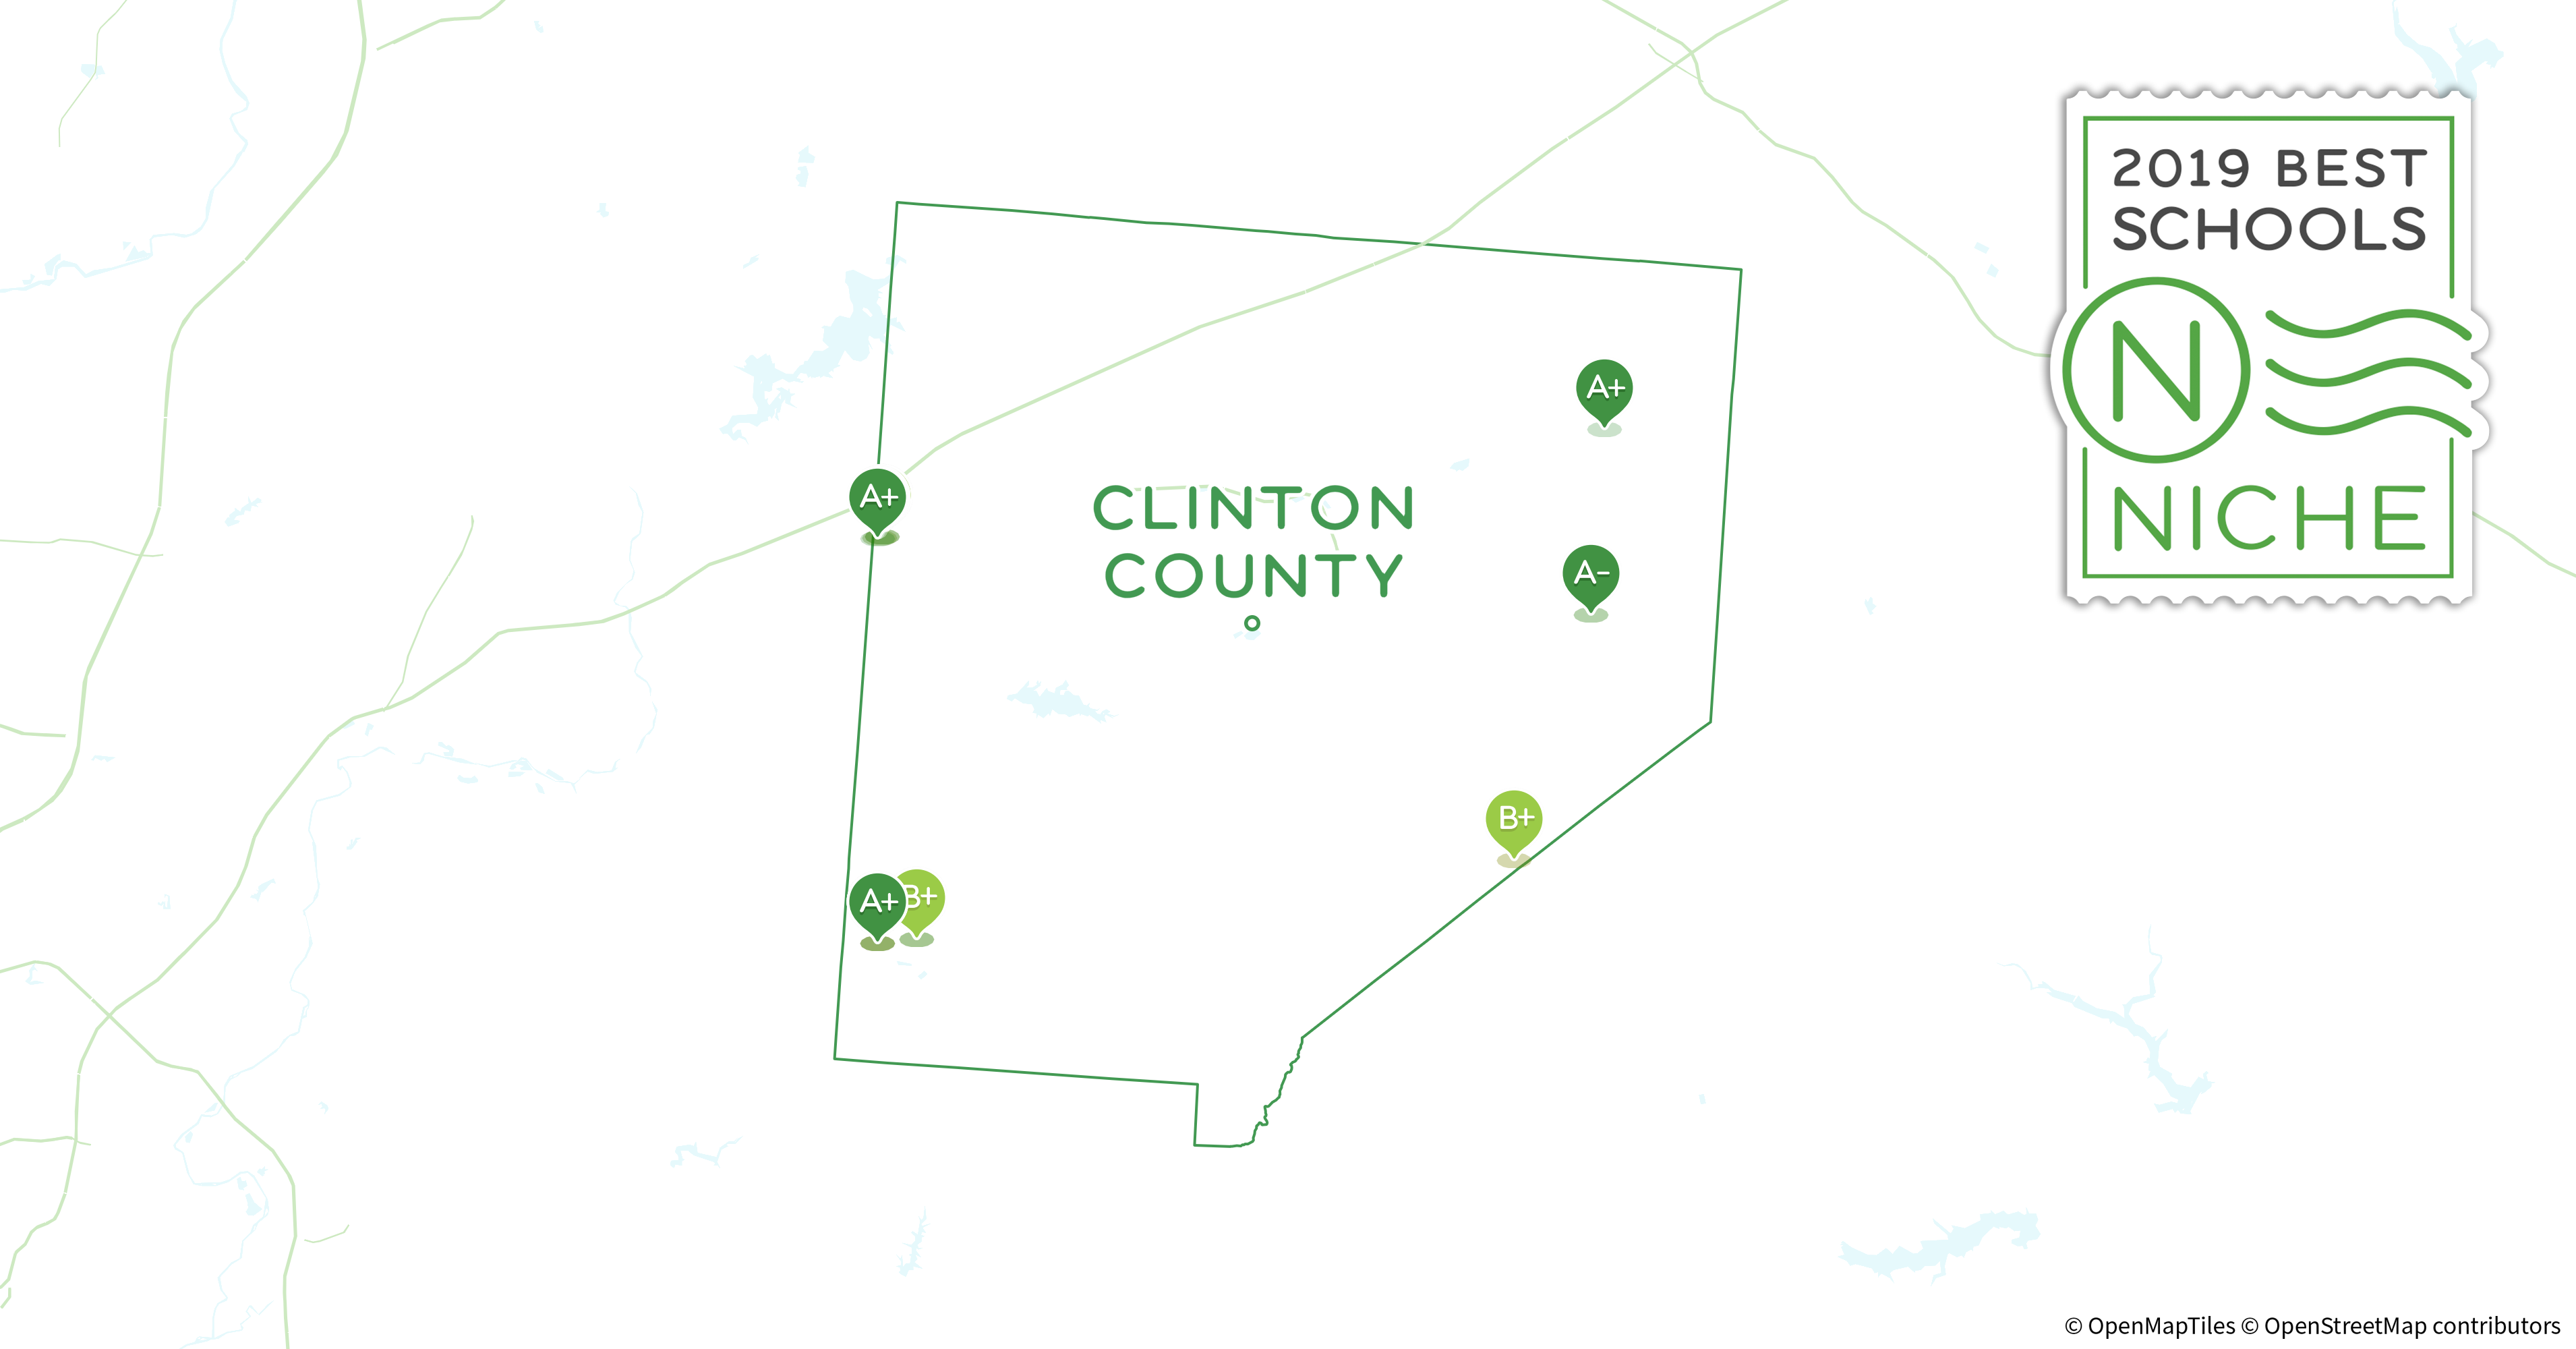 School Districts In Clinton County Oh Niche